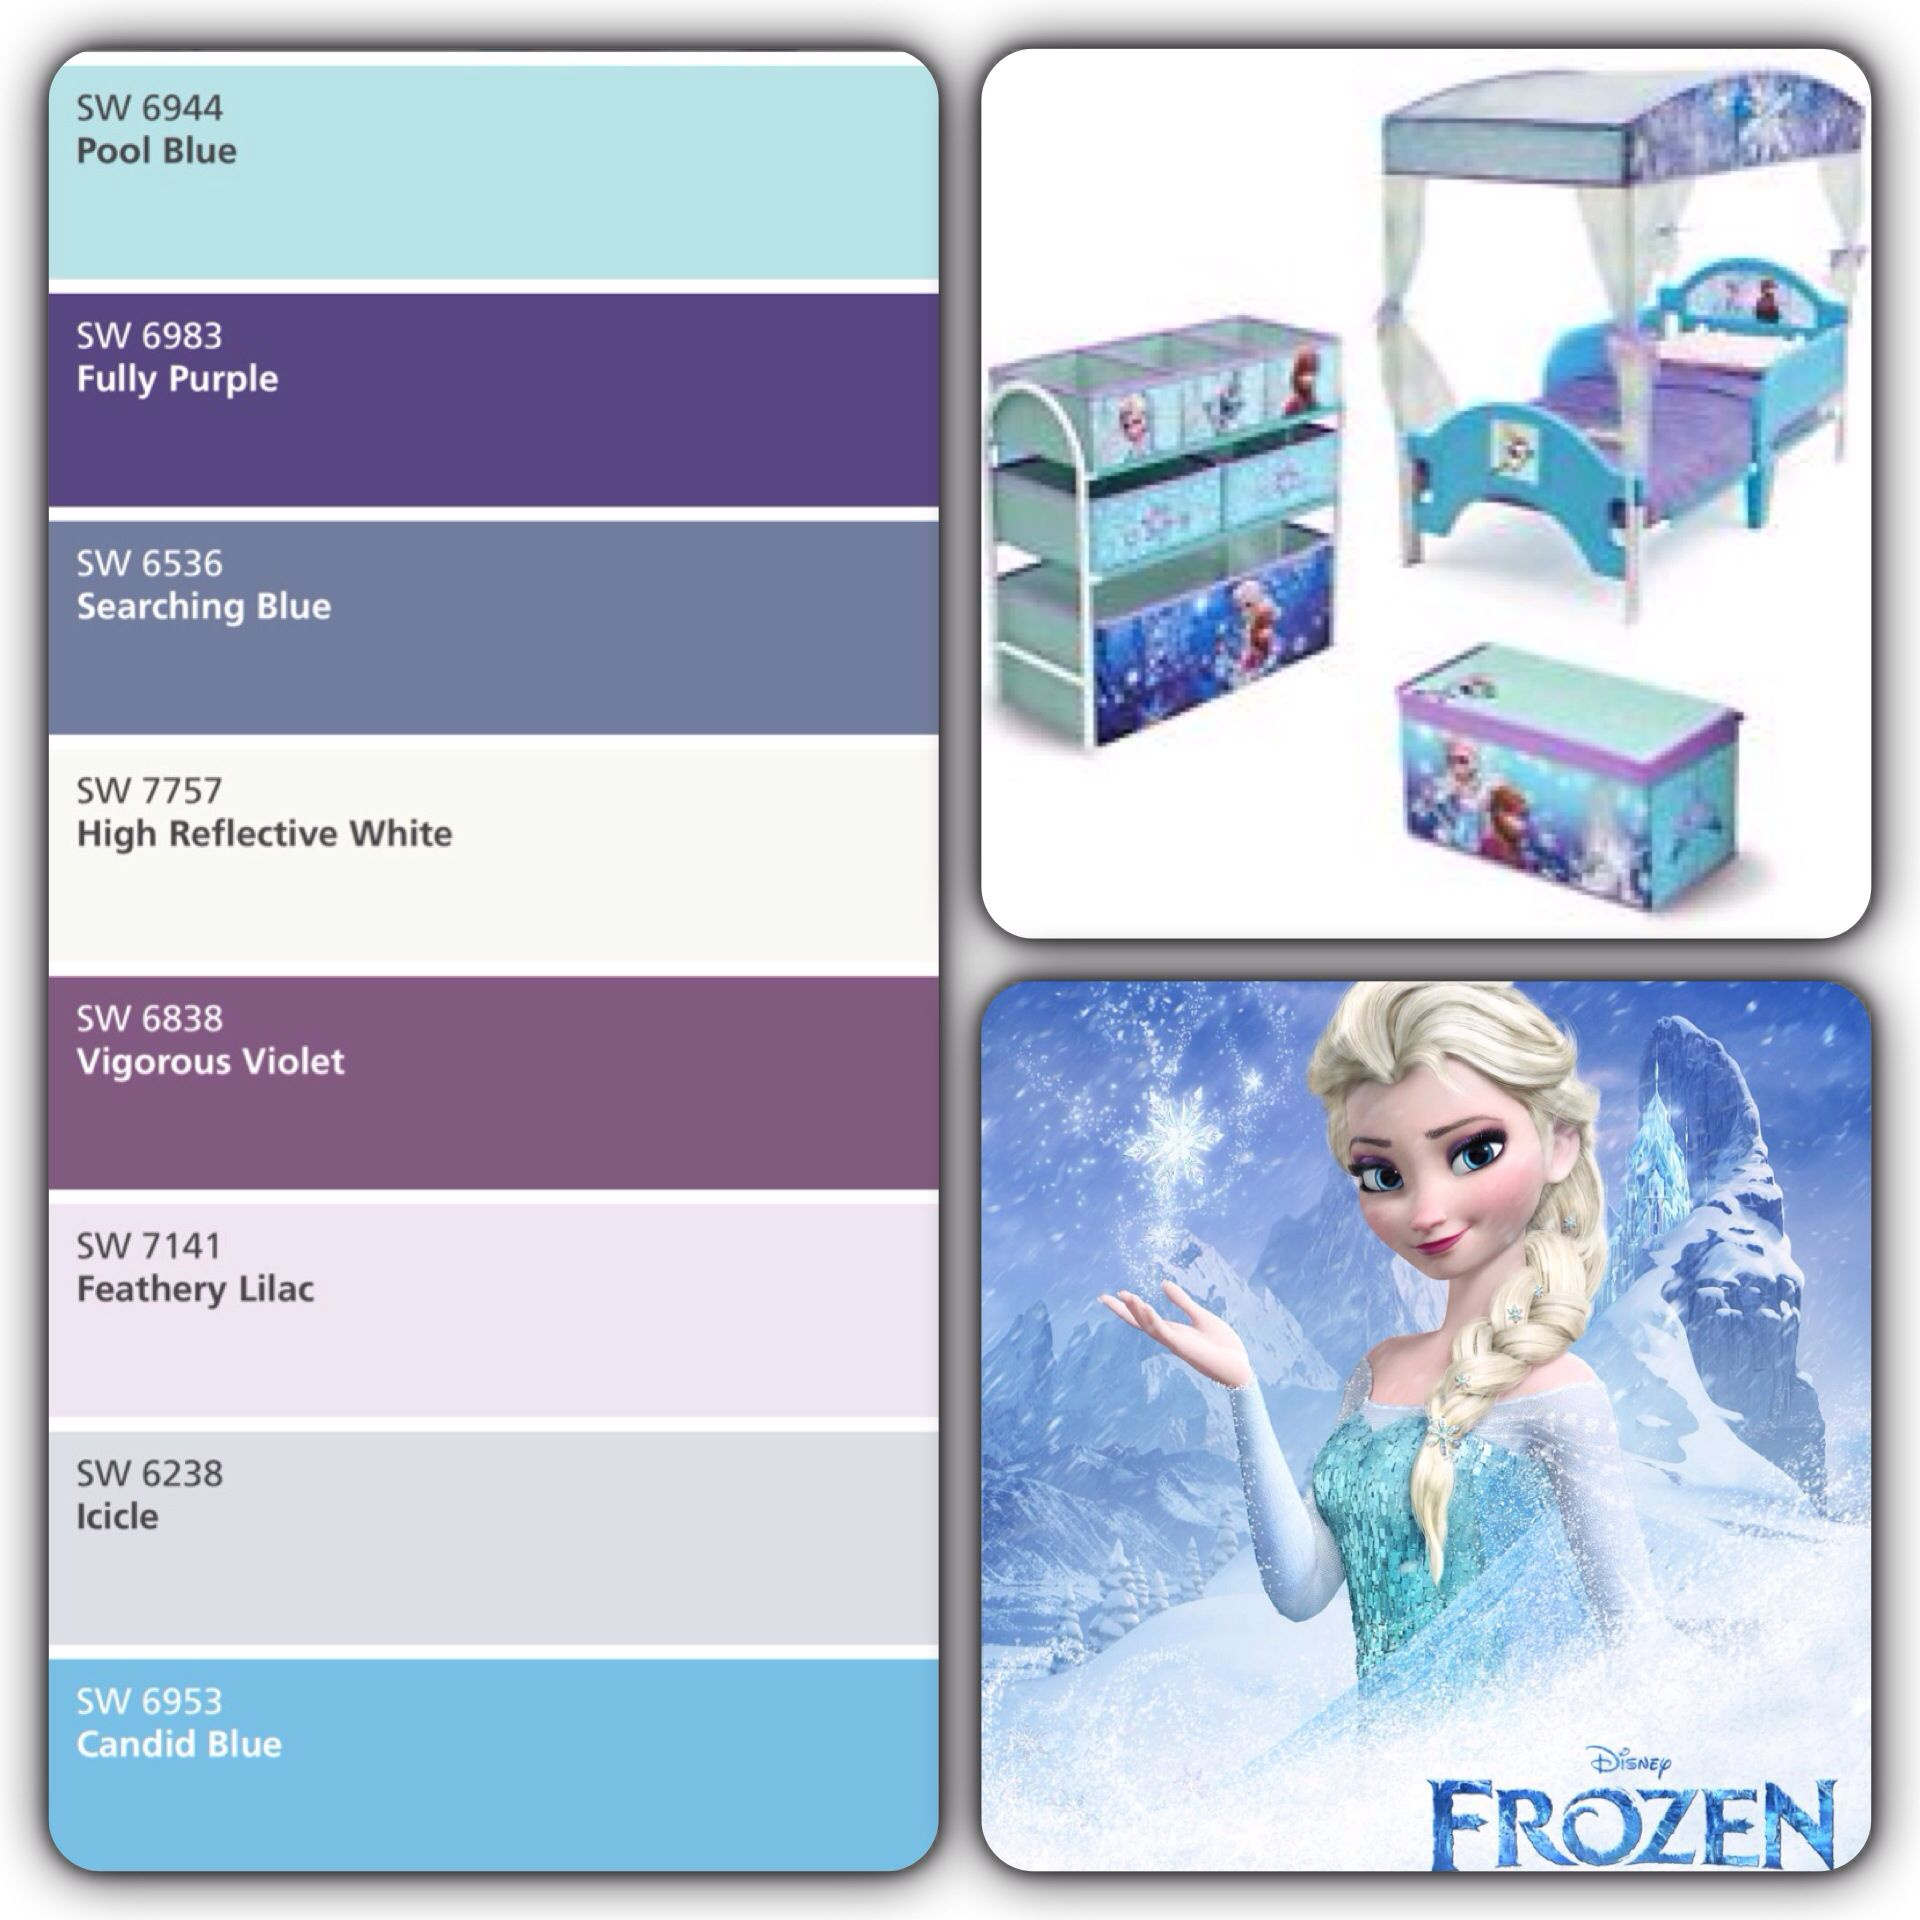 Frozen inspired bedroom - Frozen Has Become A Very Popular Move Amongst Little Girls Now What Sweet Little One Frozen Bedroom Themefrozen Inspired